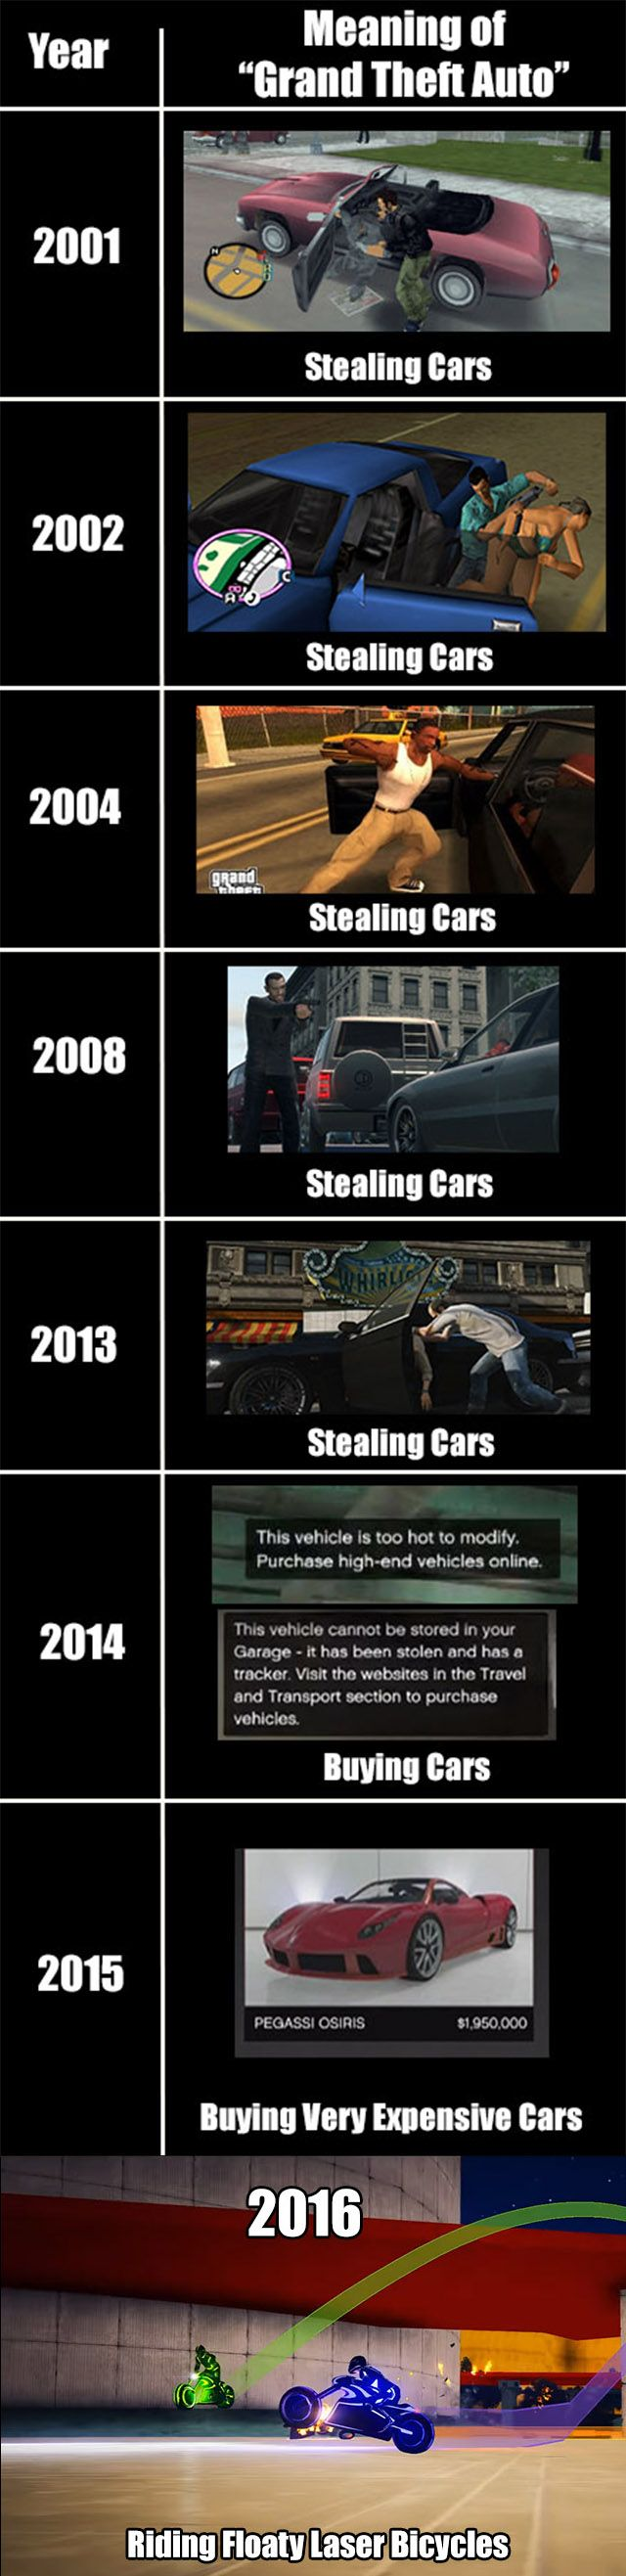 Grand Theft Auto through the years http://i.imgur.com/lPCsApl.jpg